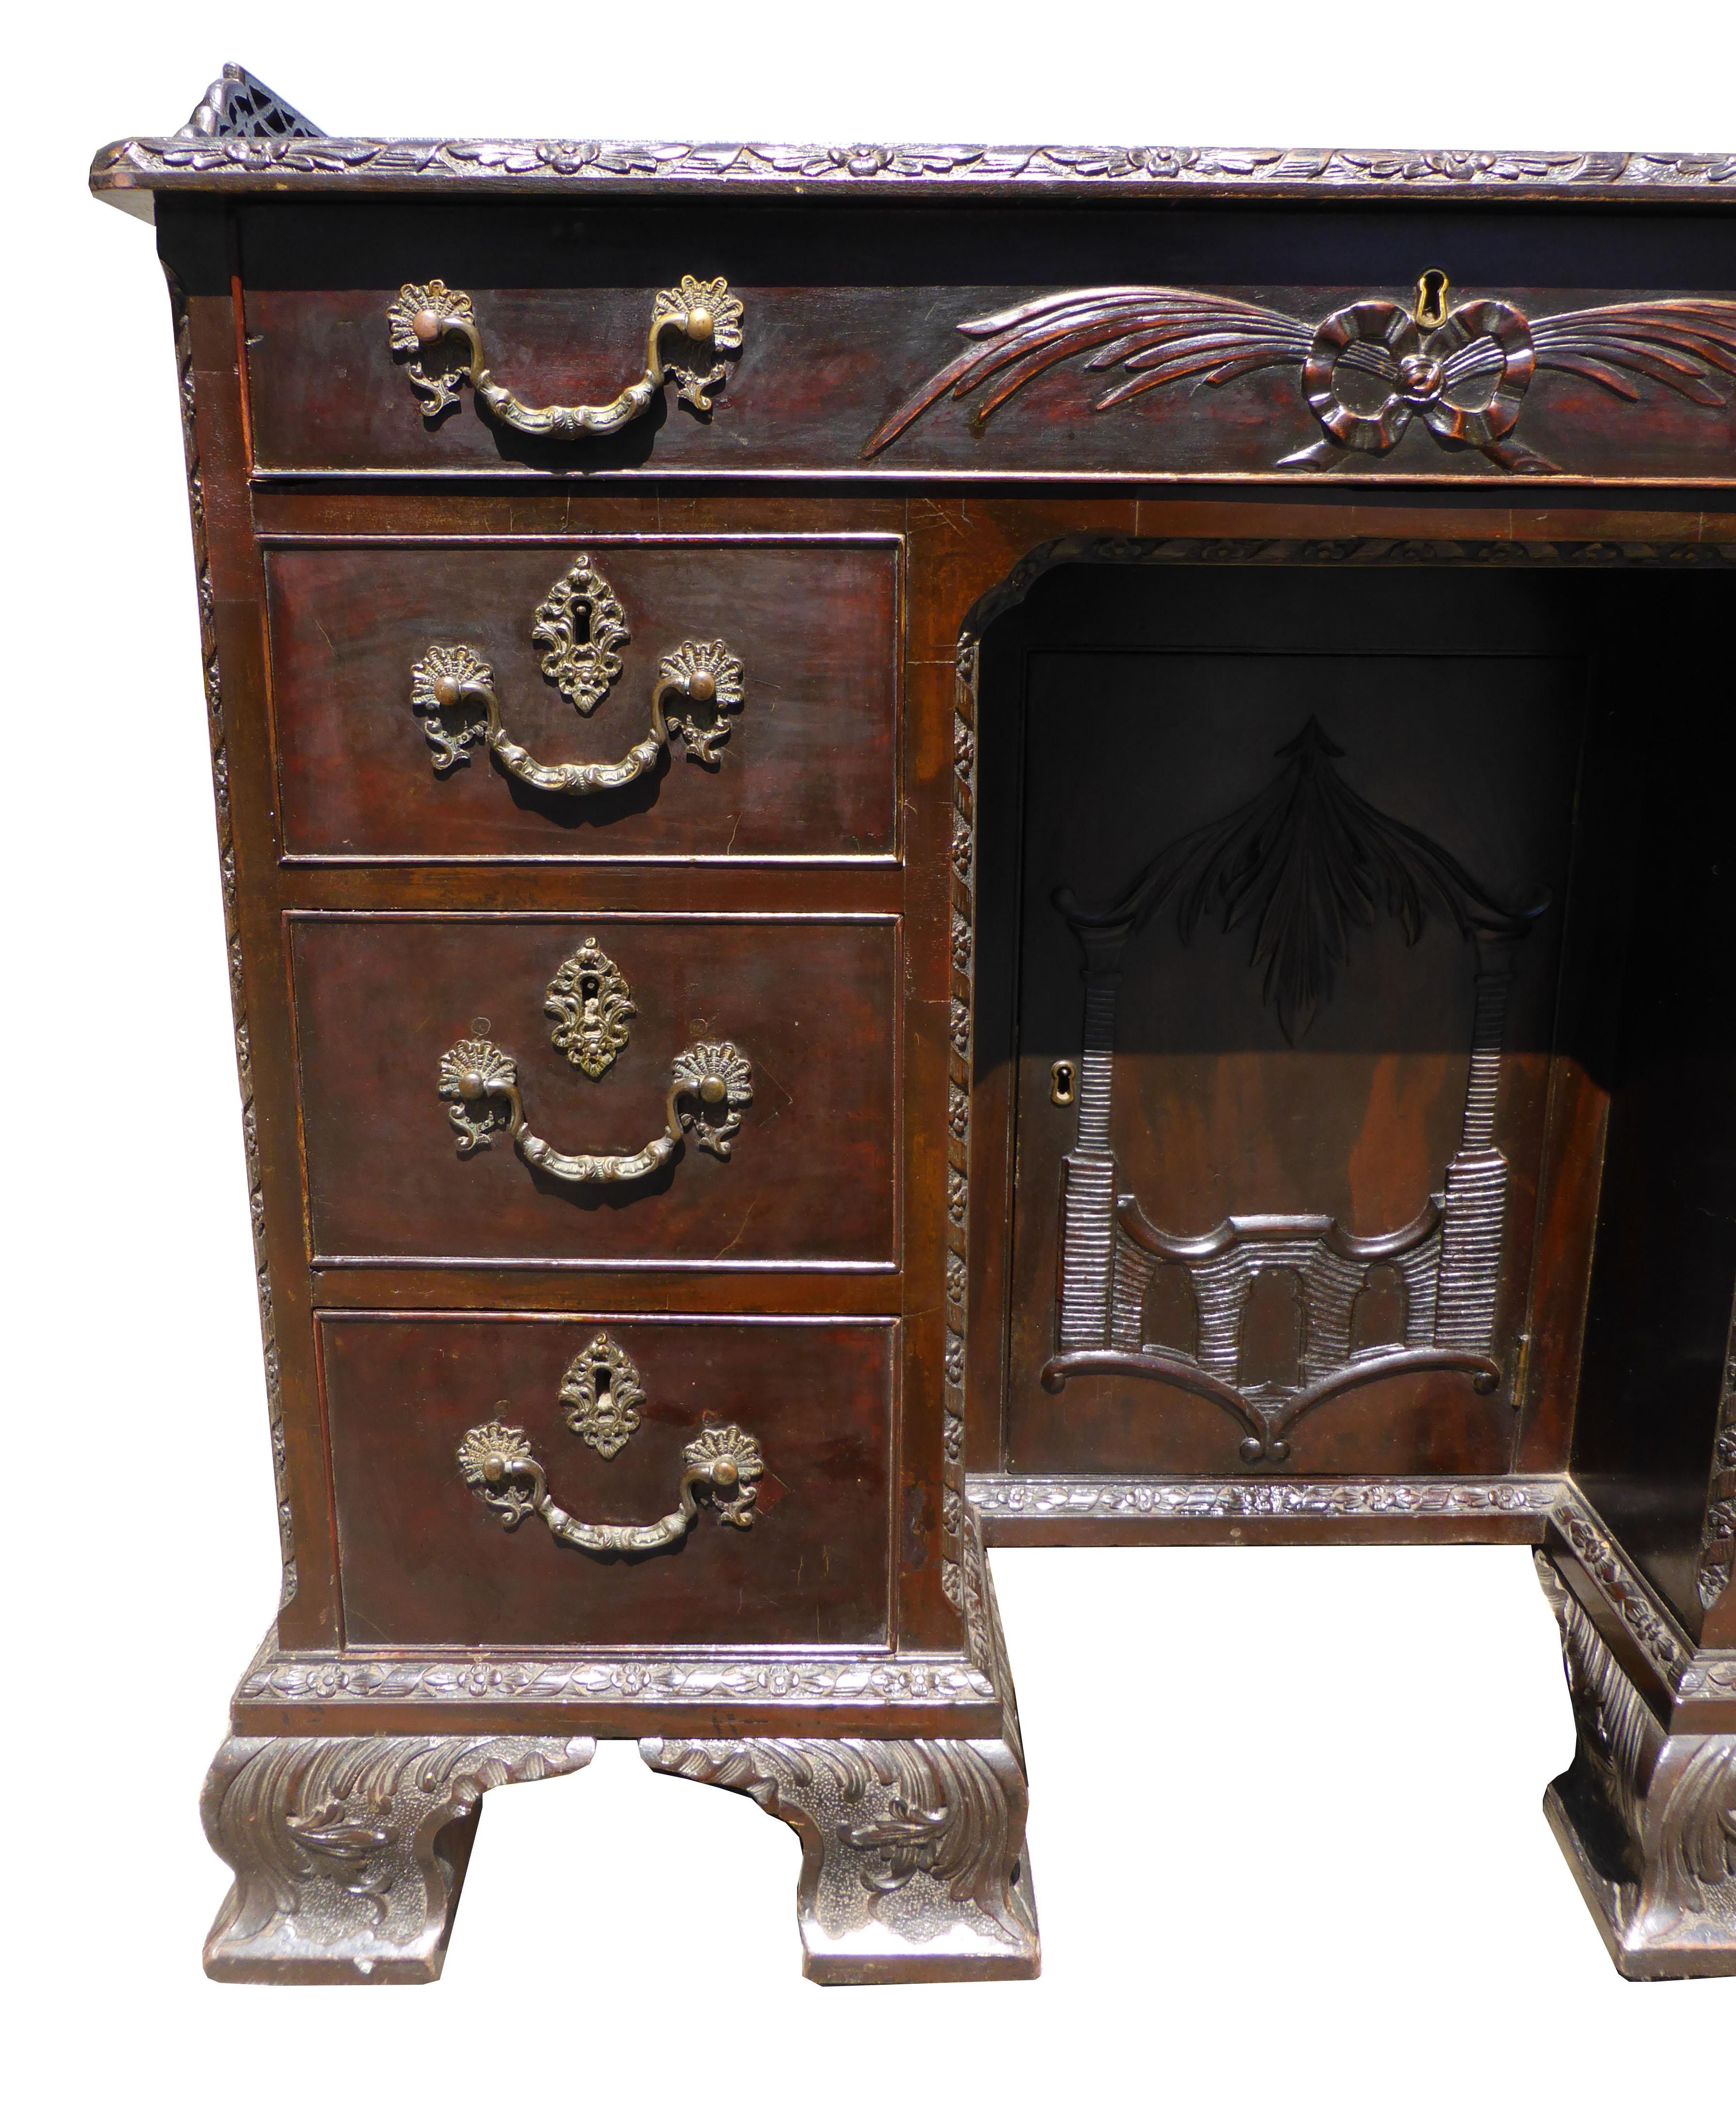 19th Century Mahogany Chinese Chippendale Desk Things I Like